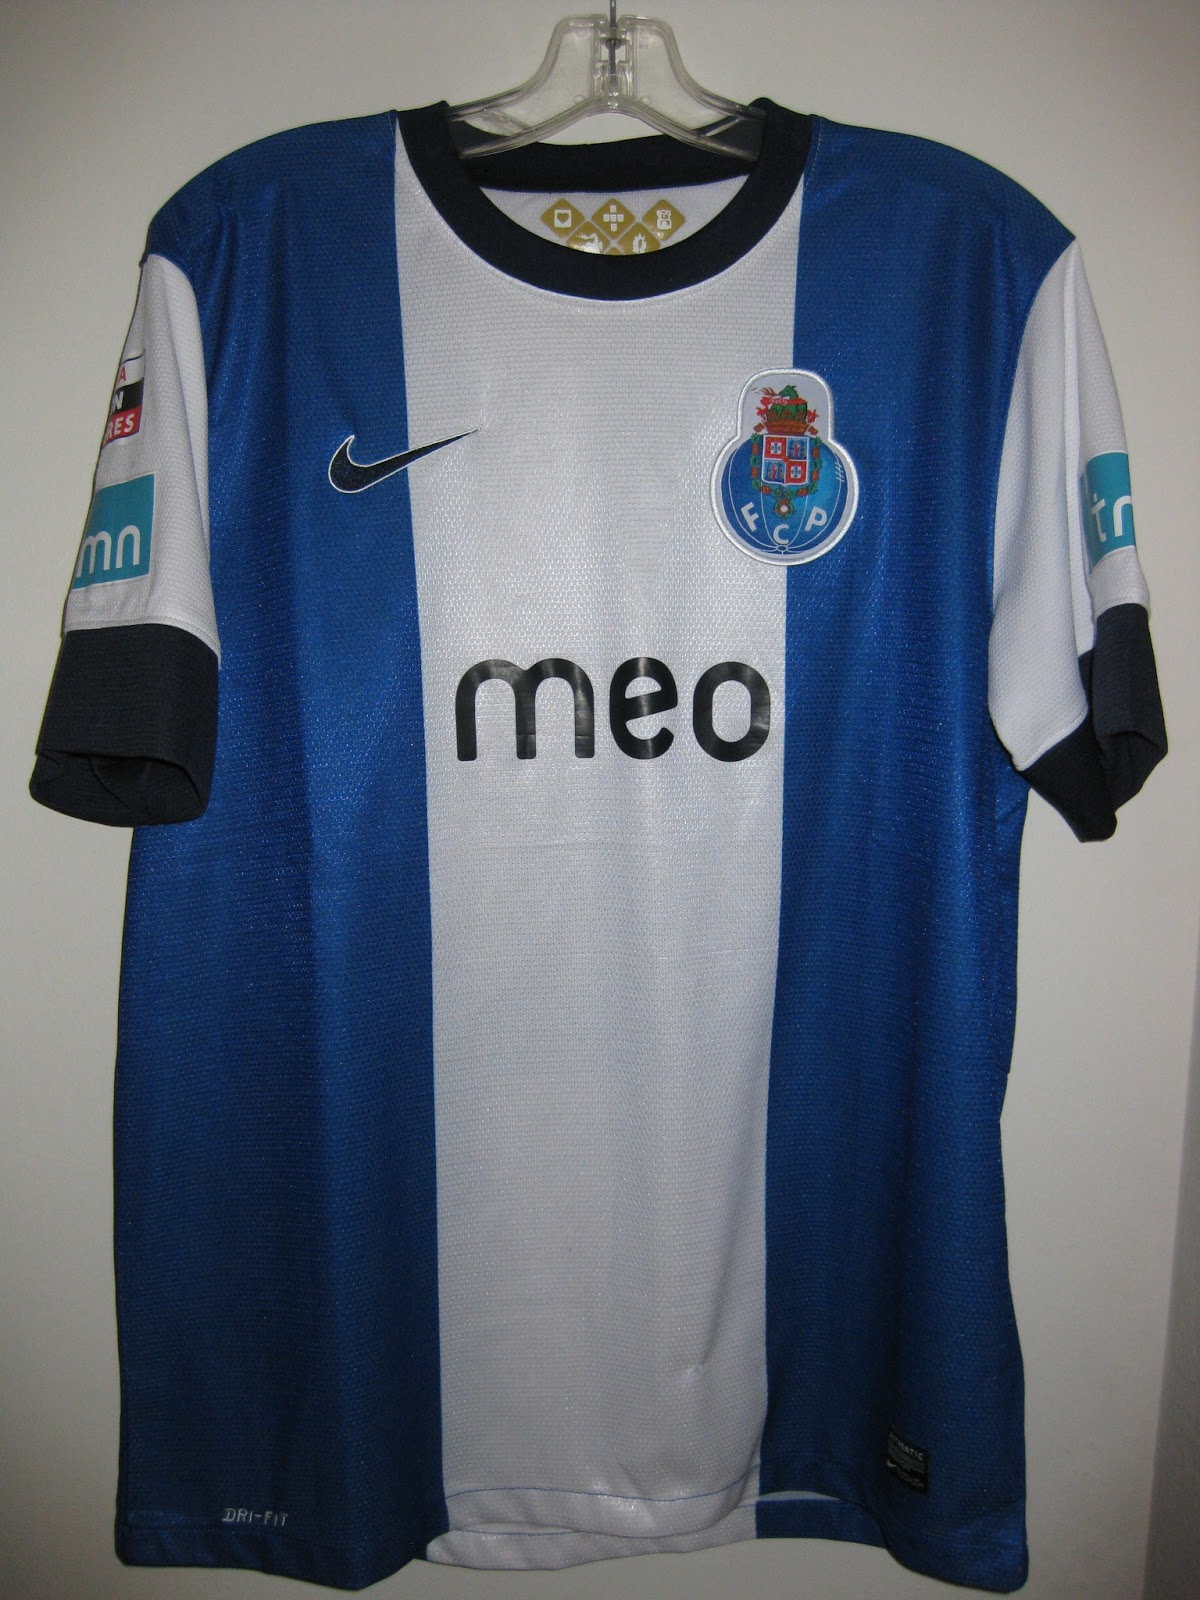 10af2e7f2 Chris s Soccer Jersey Collection  2012-13 FC Porto Hulk Home Jersey